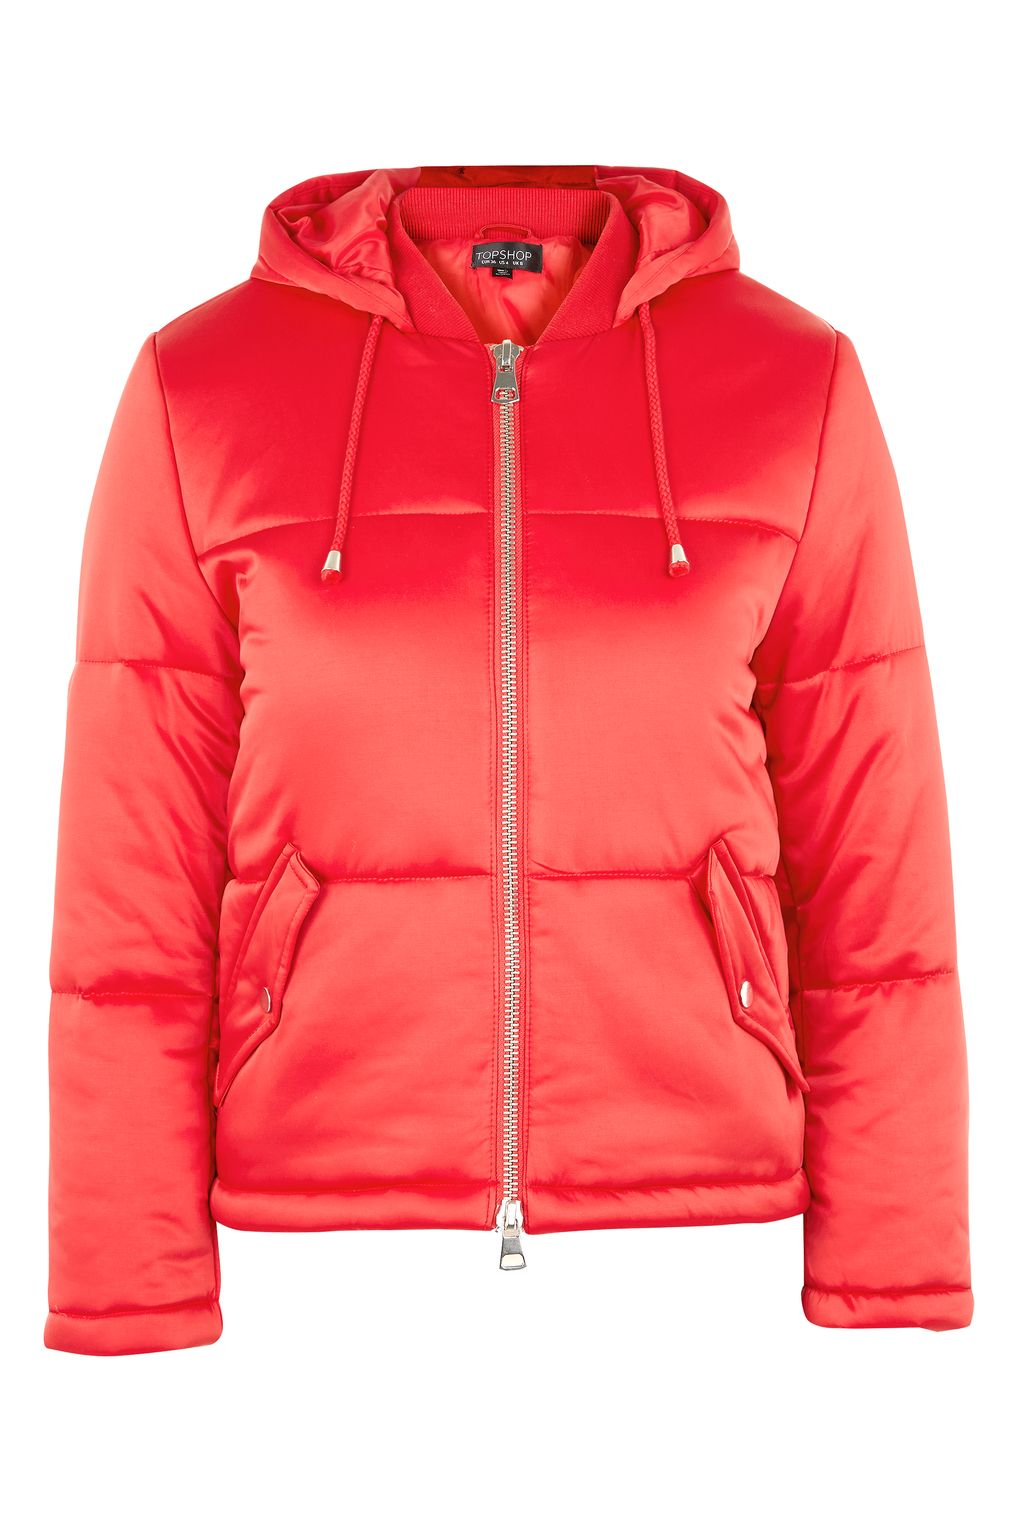 TOPHSOP QUILTED RED PUFFER JACKET